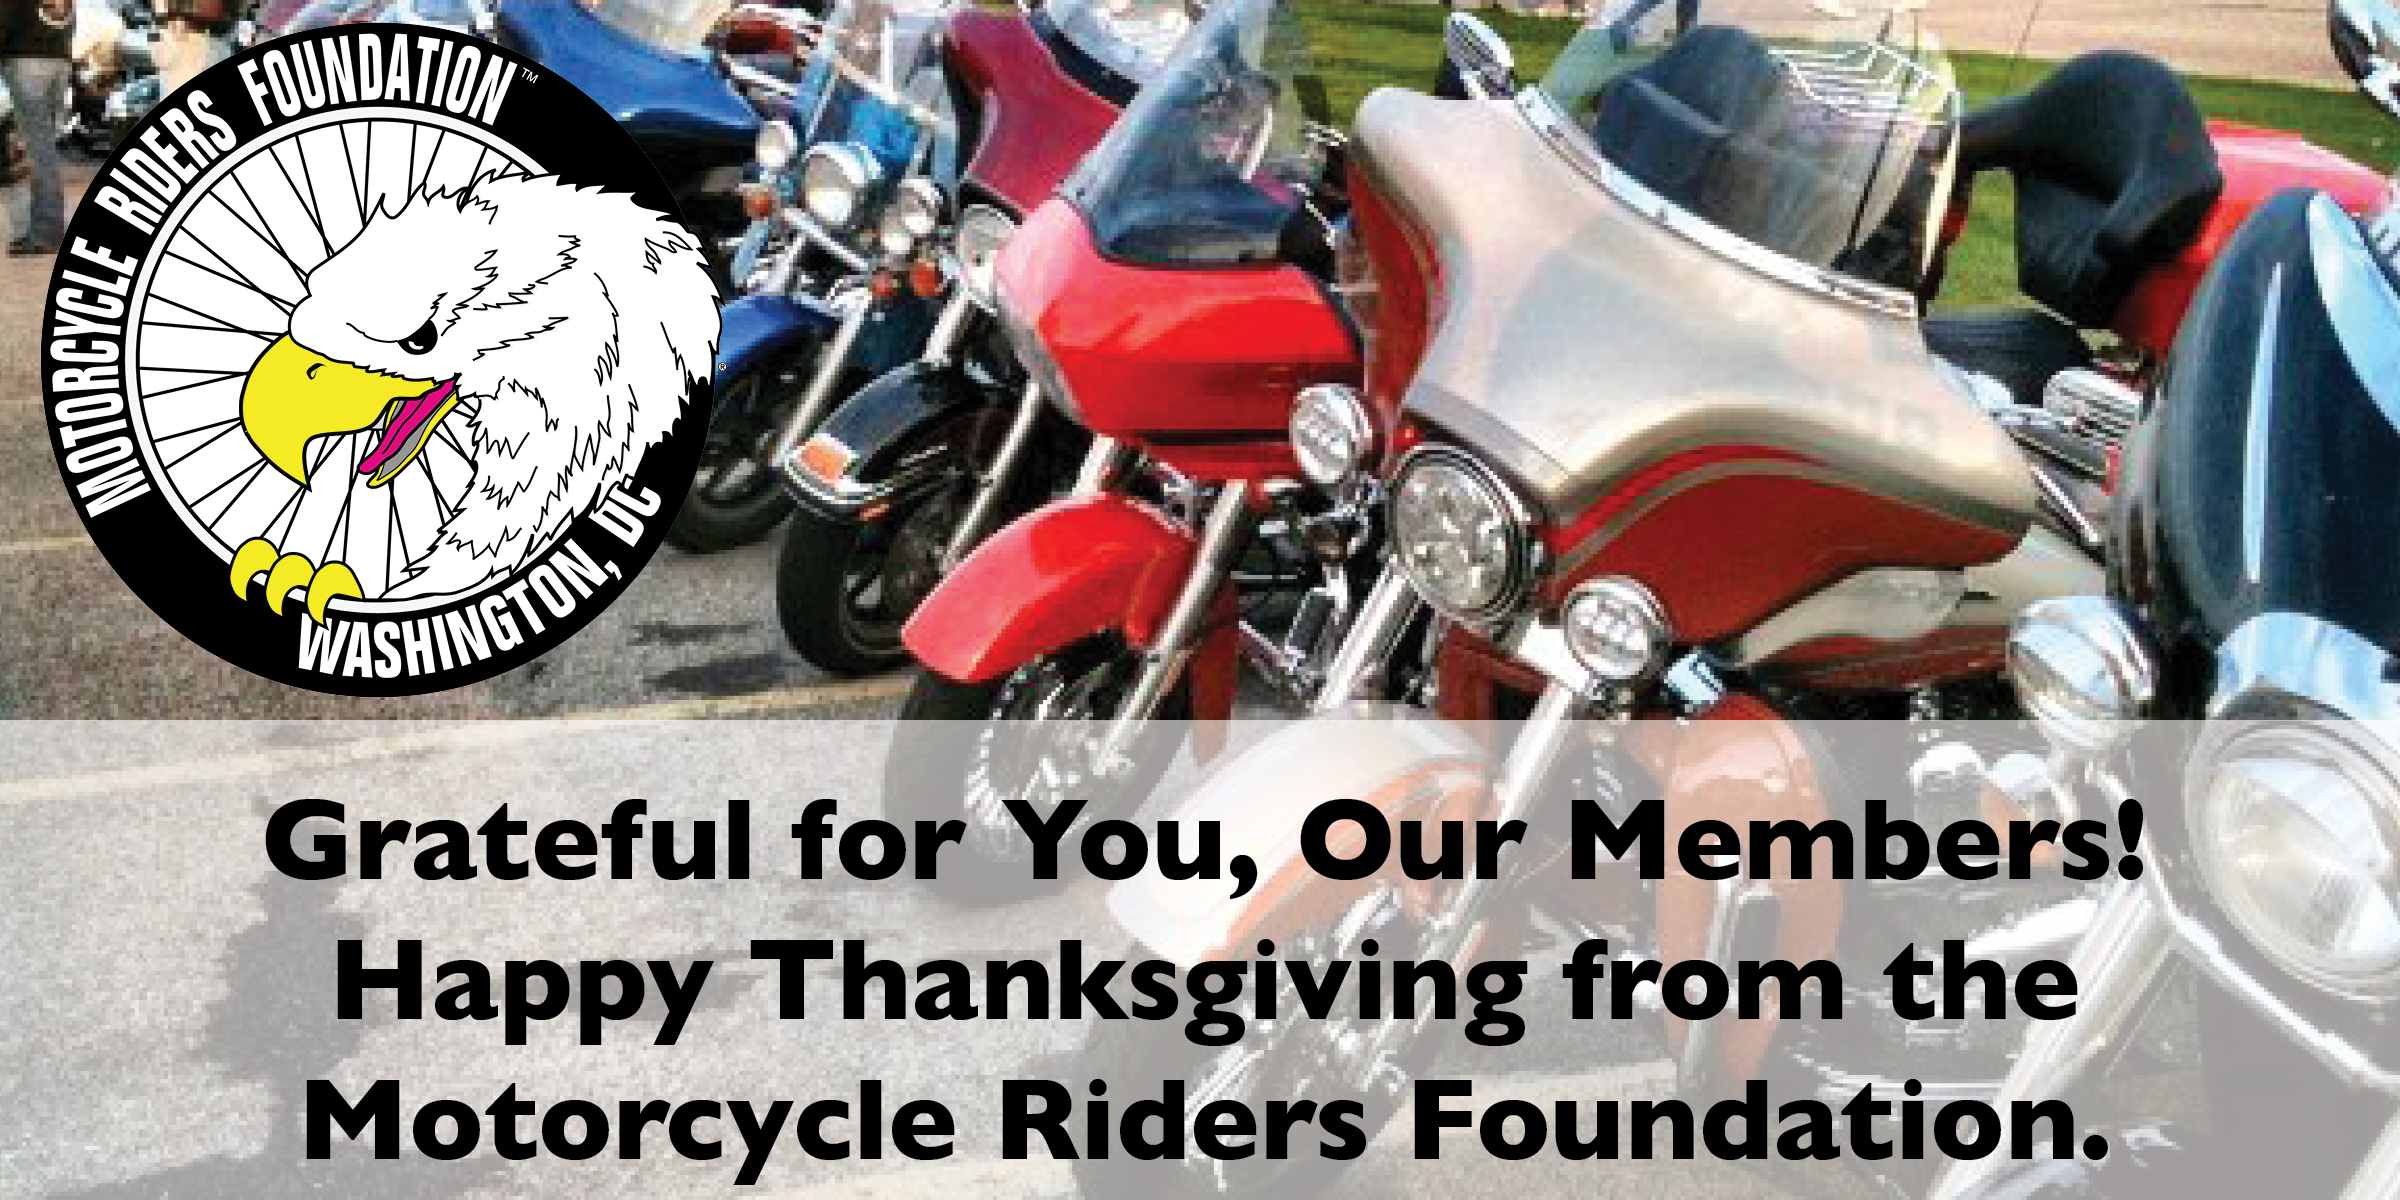 Happy Thanksgiving from the Motorcycle Riders Foundation